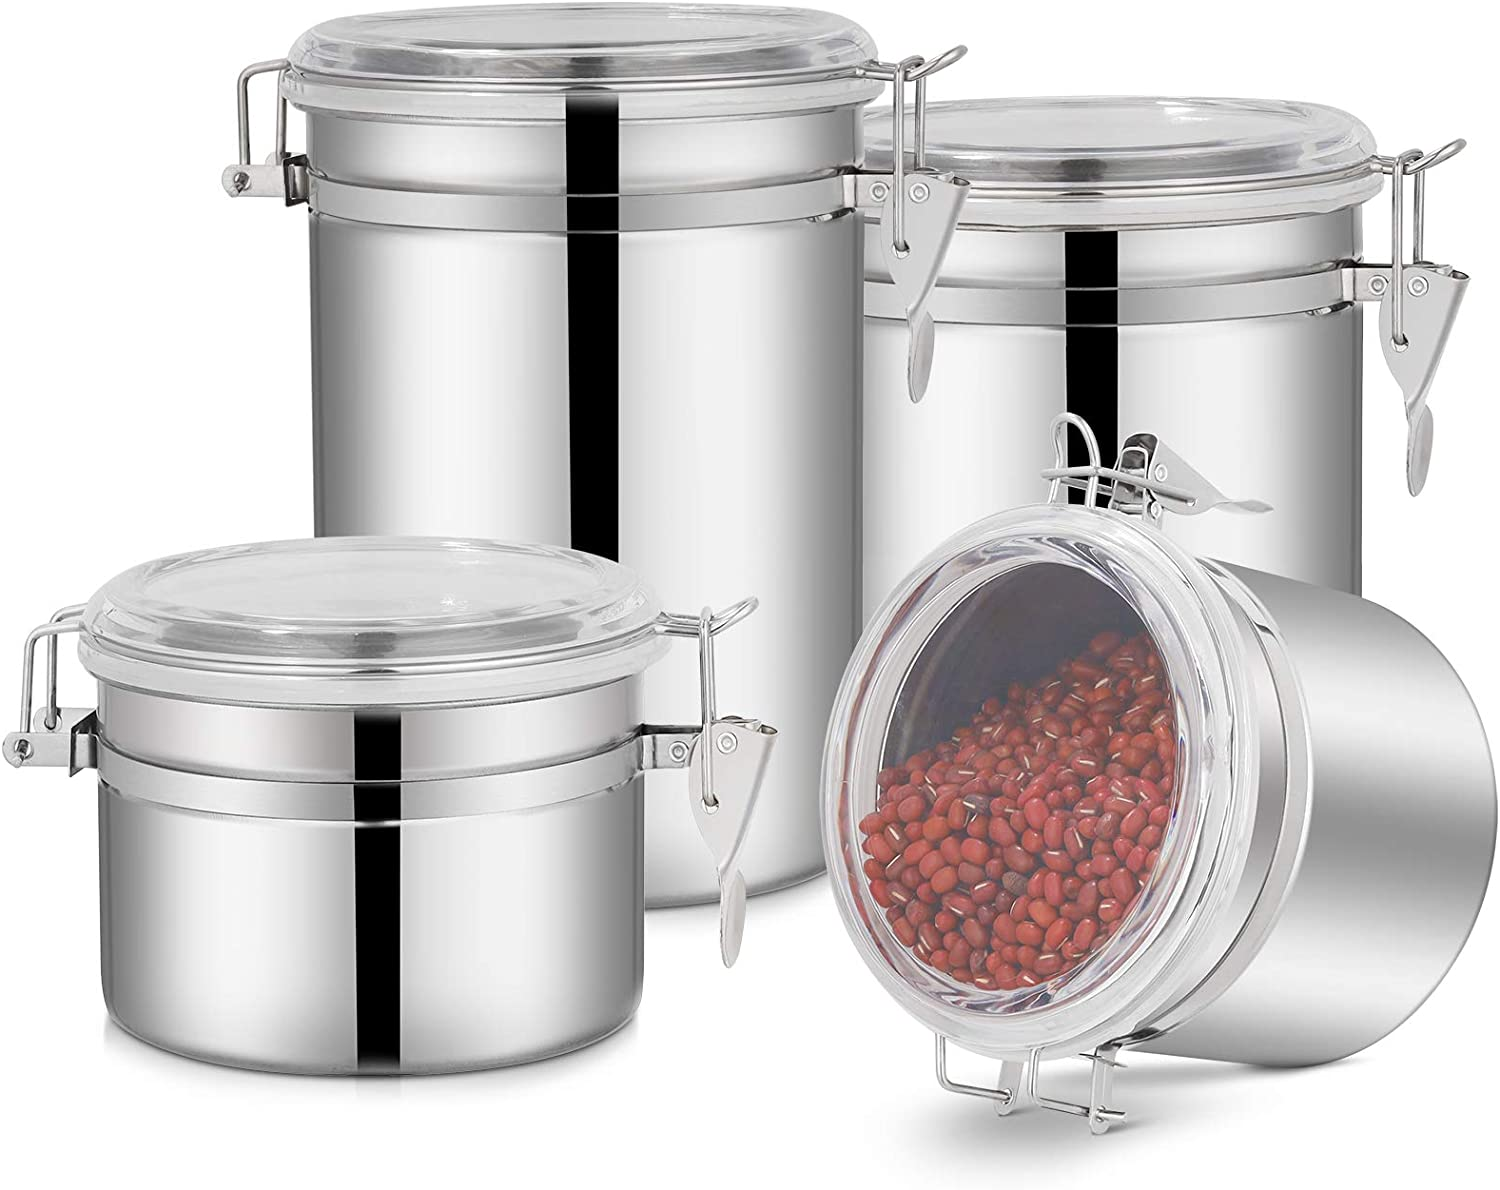 4-Piece Stainless Steel Airtight Canister Set, Food Storage Container Jars for Kitchen Counter, Flour Coffee Bean Tea Cereal Sugar Cookie Storage Canister with Clear Acrylic Lid & Locking Clamp